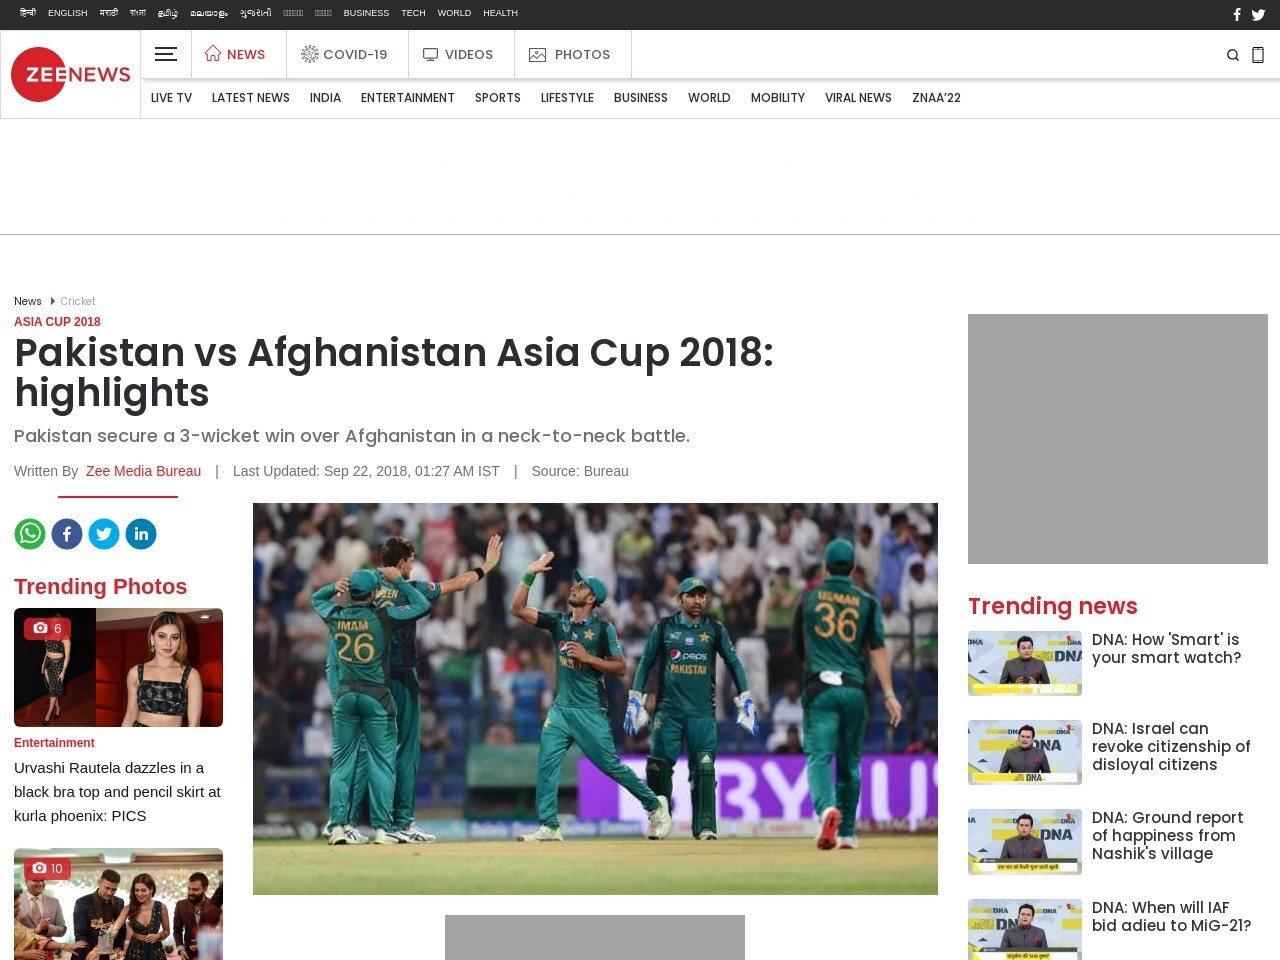 Pakistan vs Afghanistan Asia Cup 2018: highlights